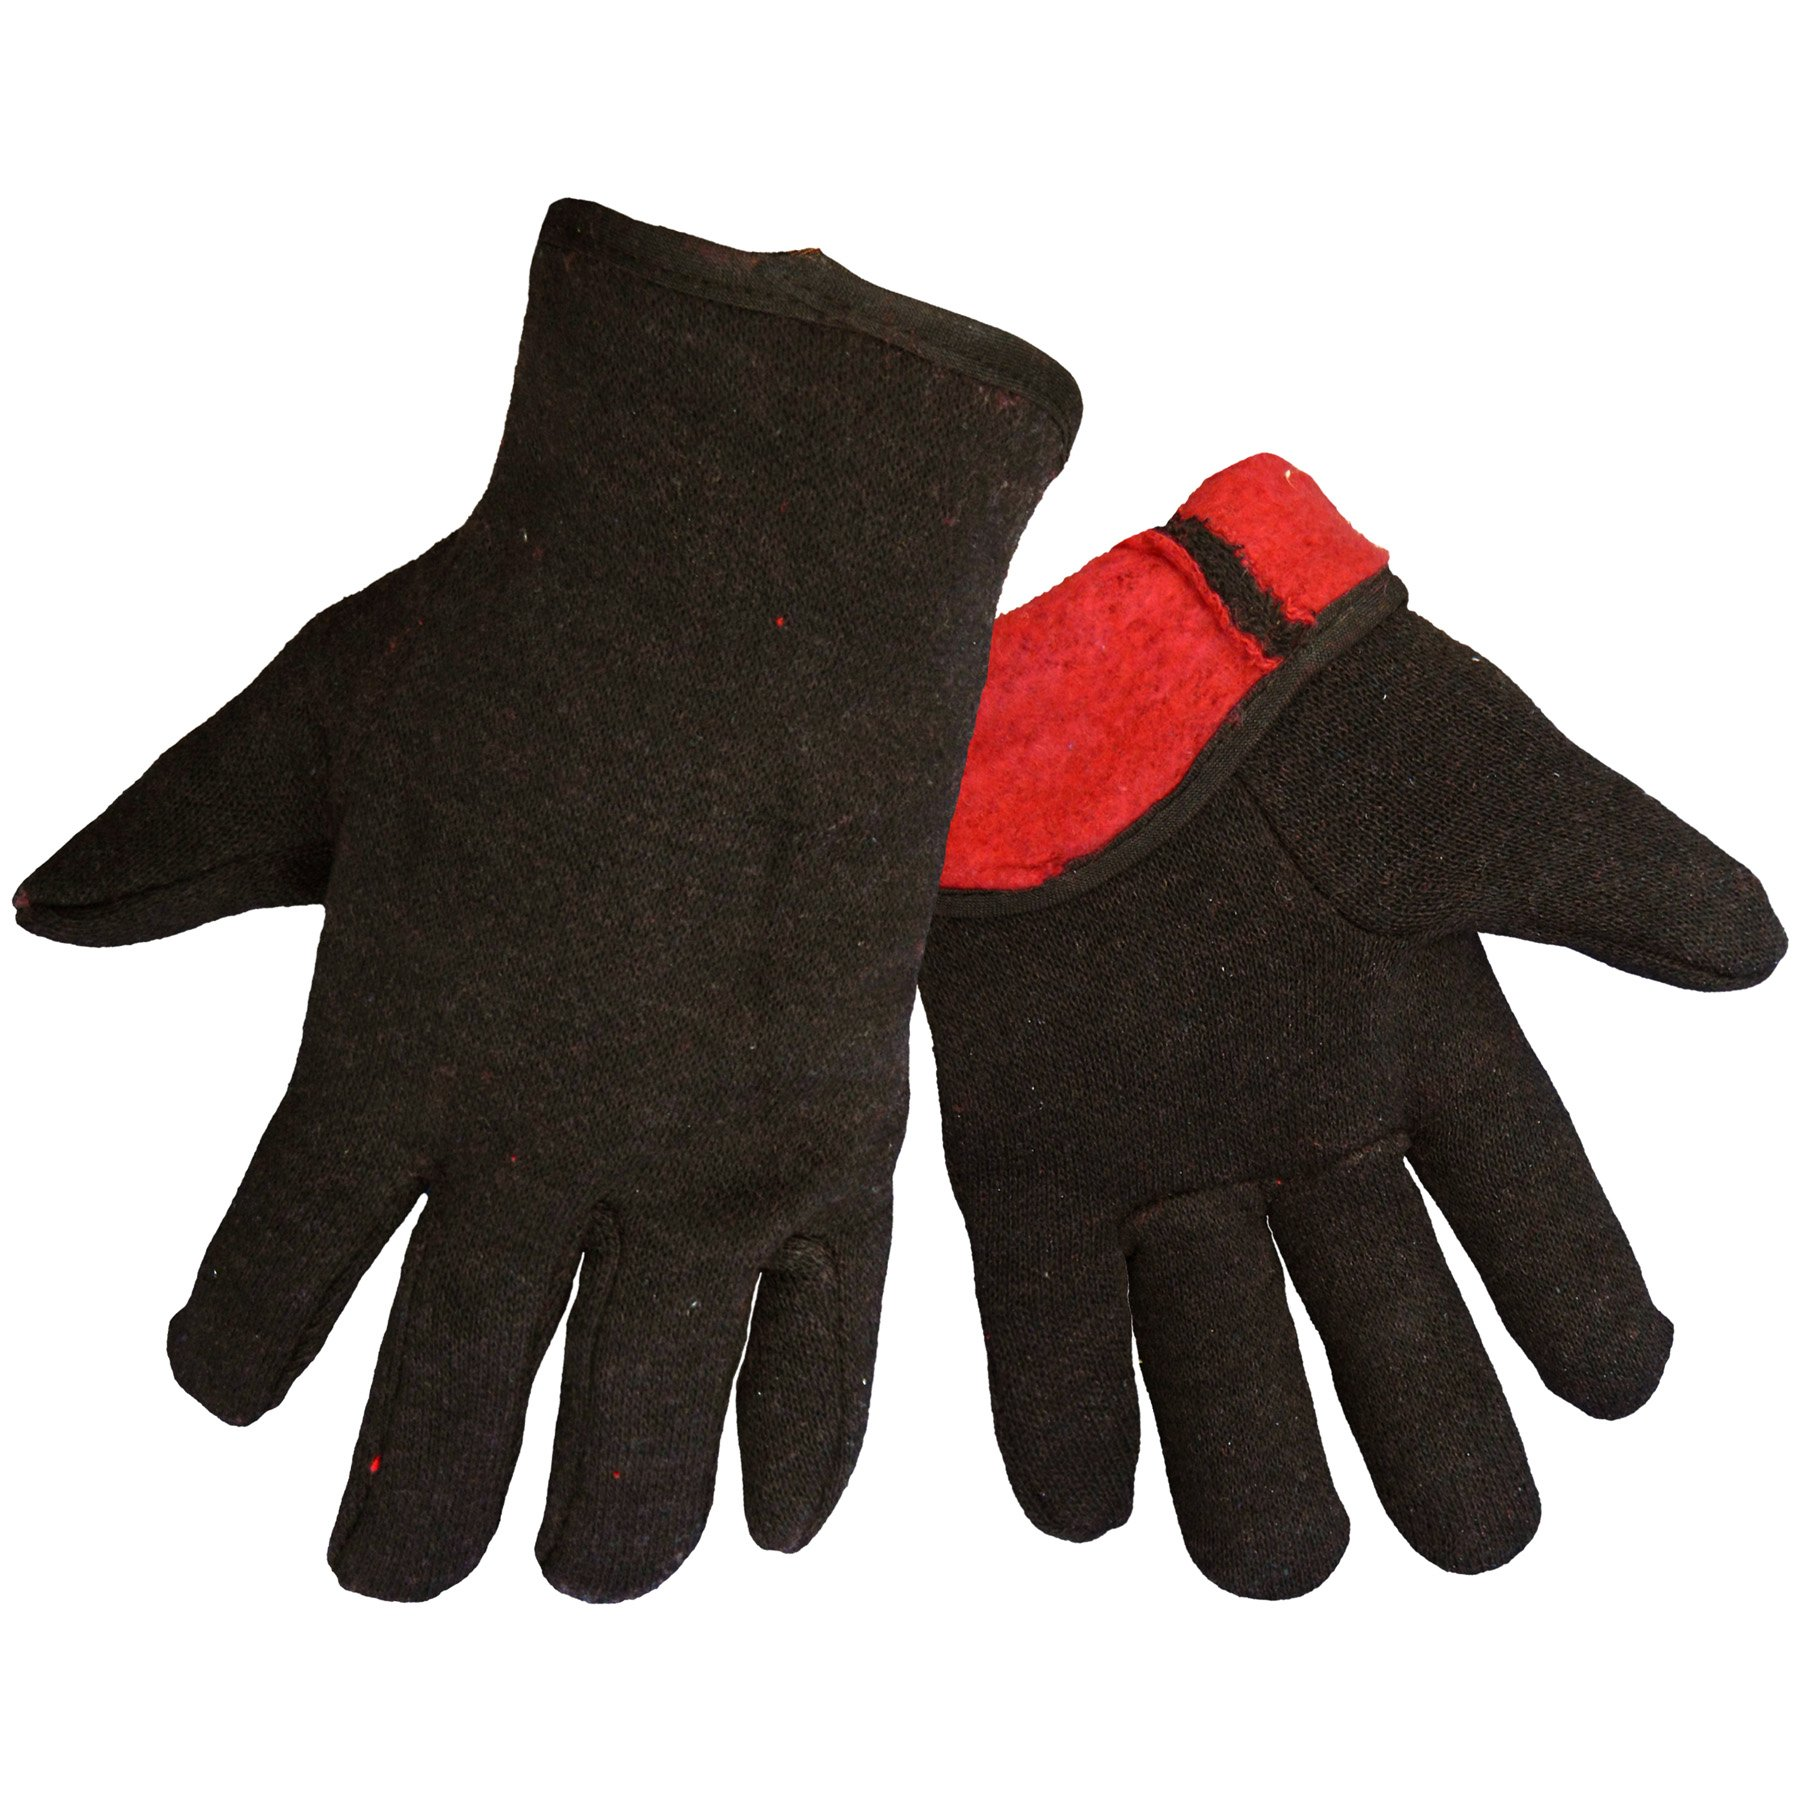 Global Glove C10BJR Cotton Jersey Glove, Work, Red Lined Brown (Case of 144)